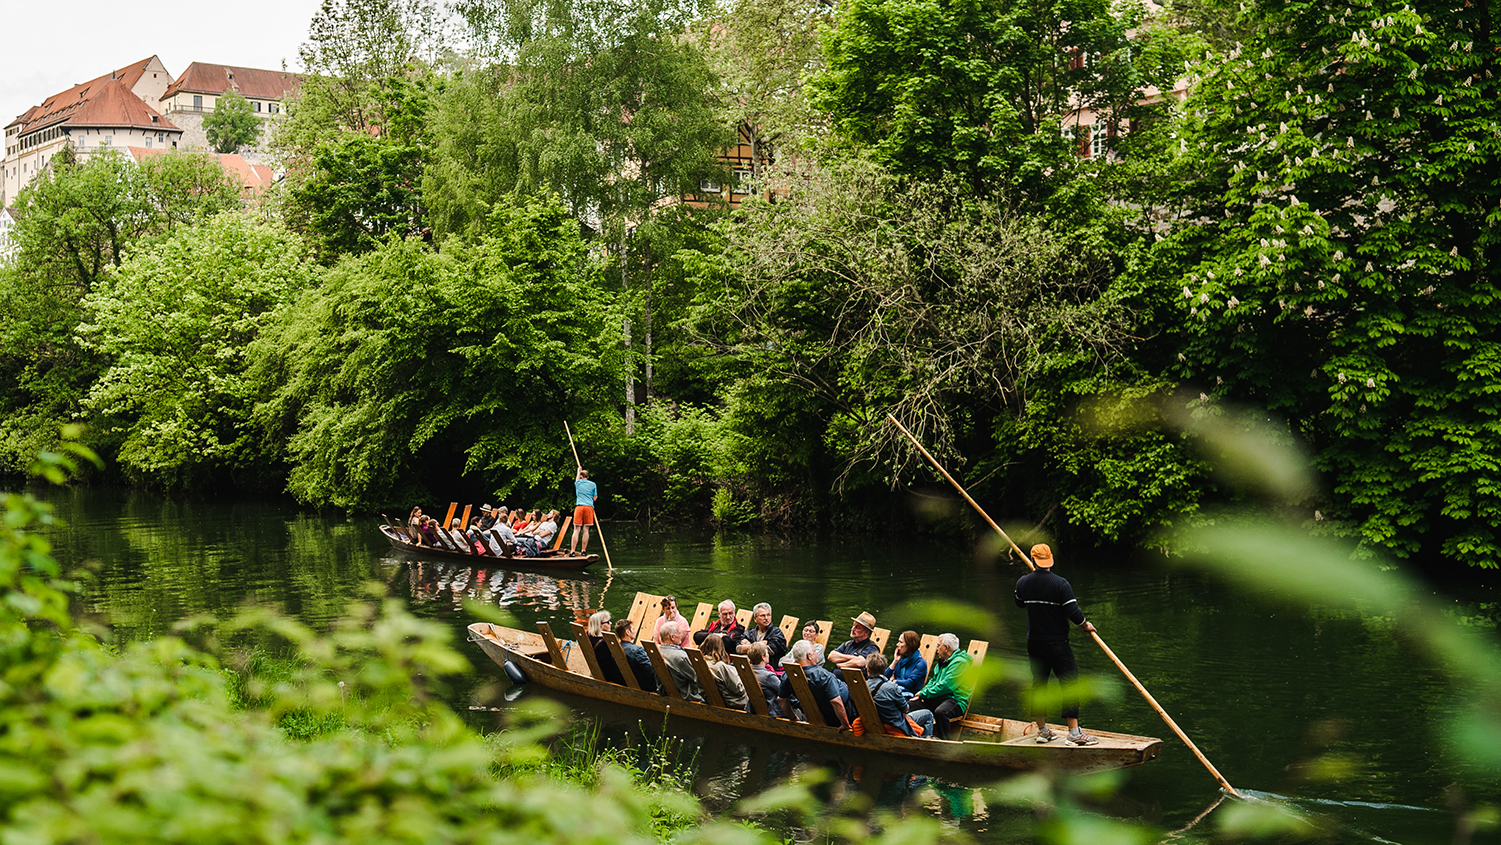 People ride on longboats in a lush river setting